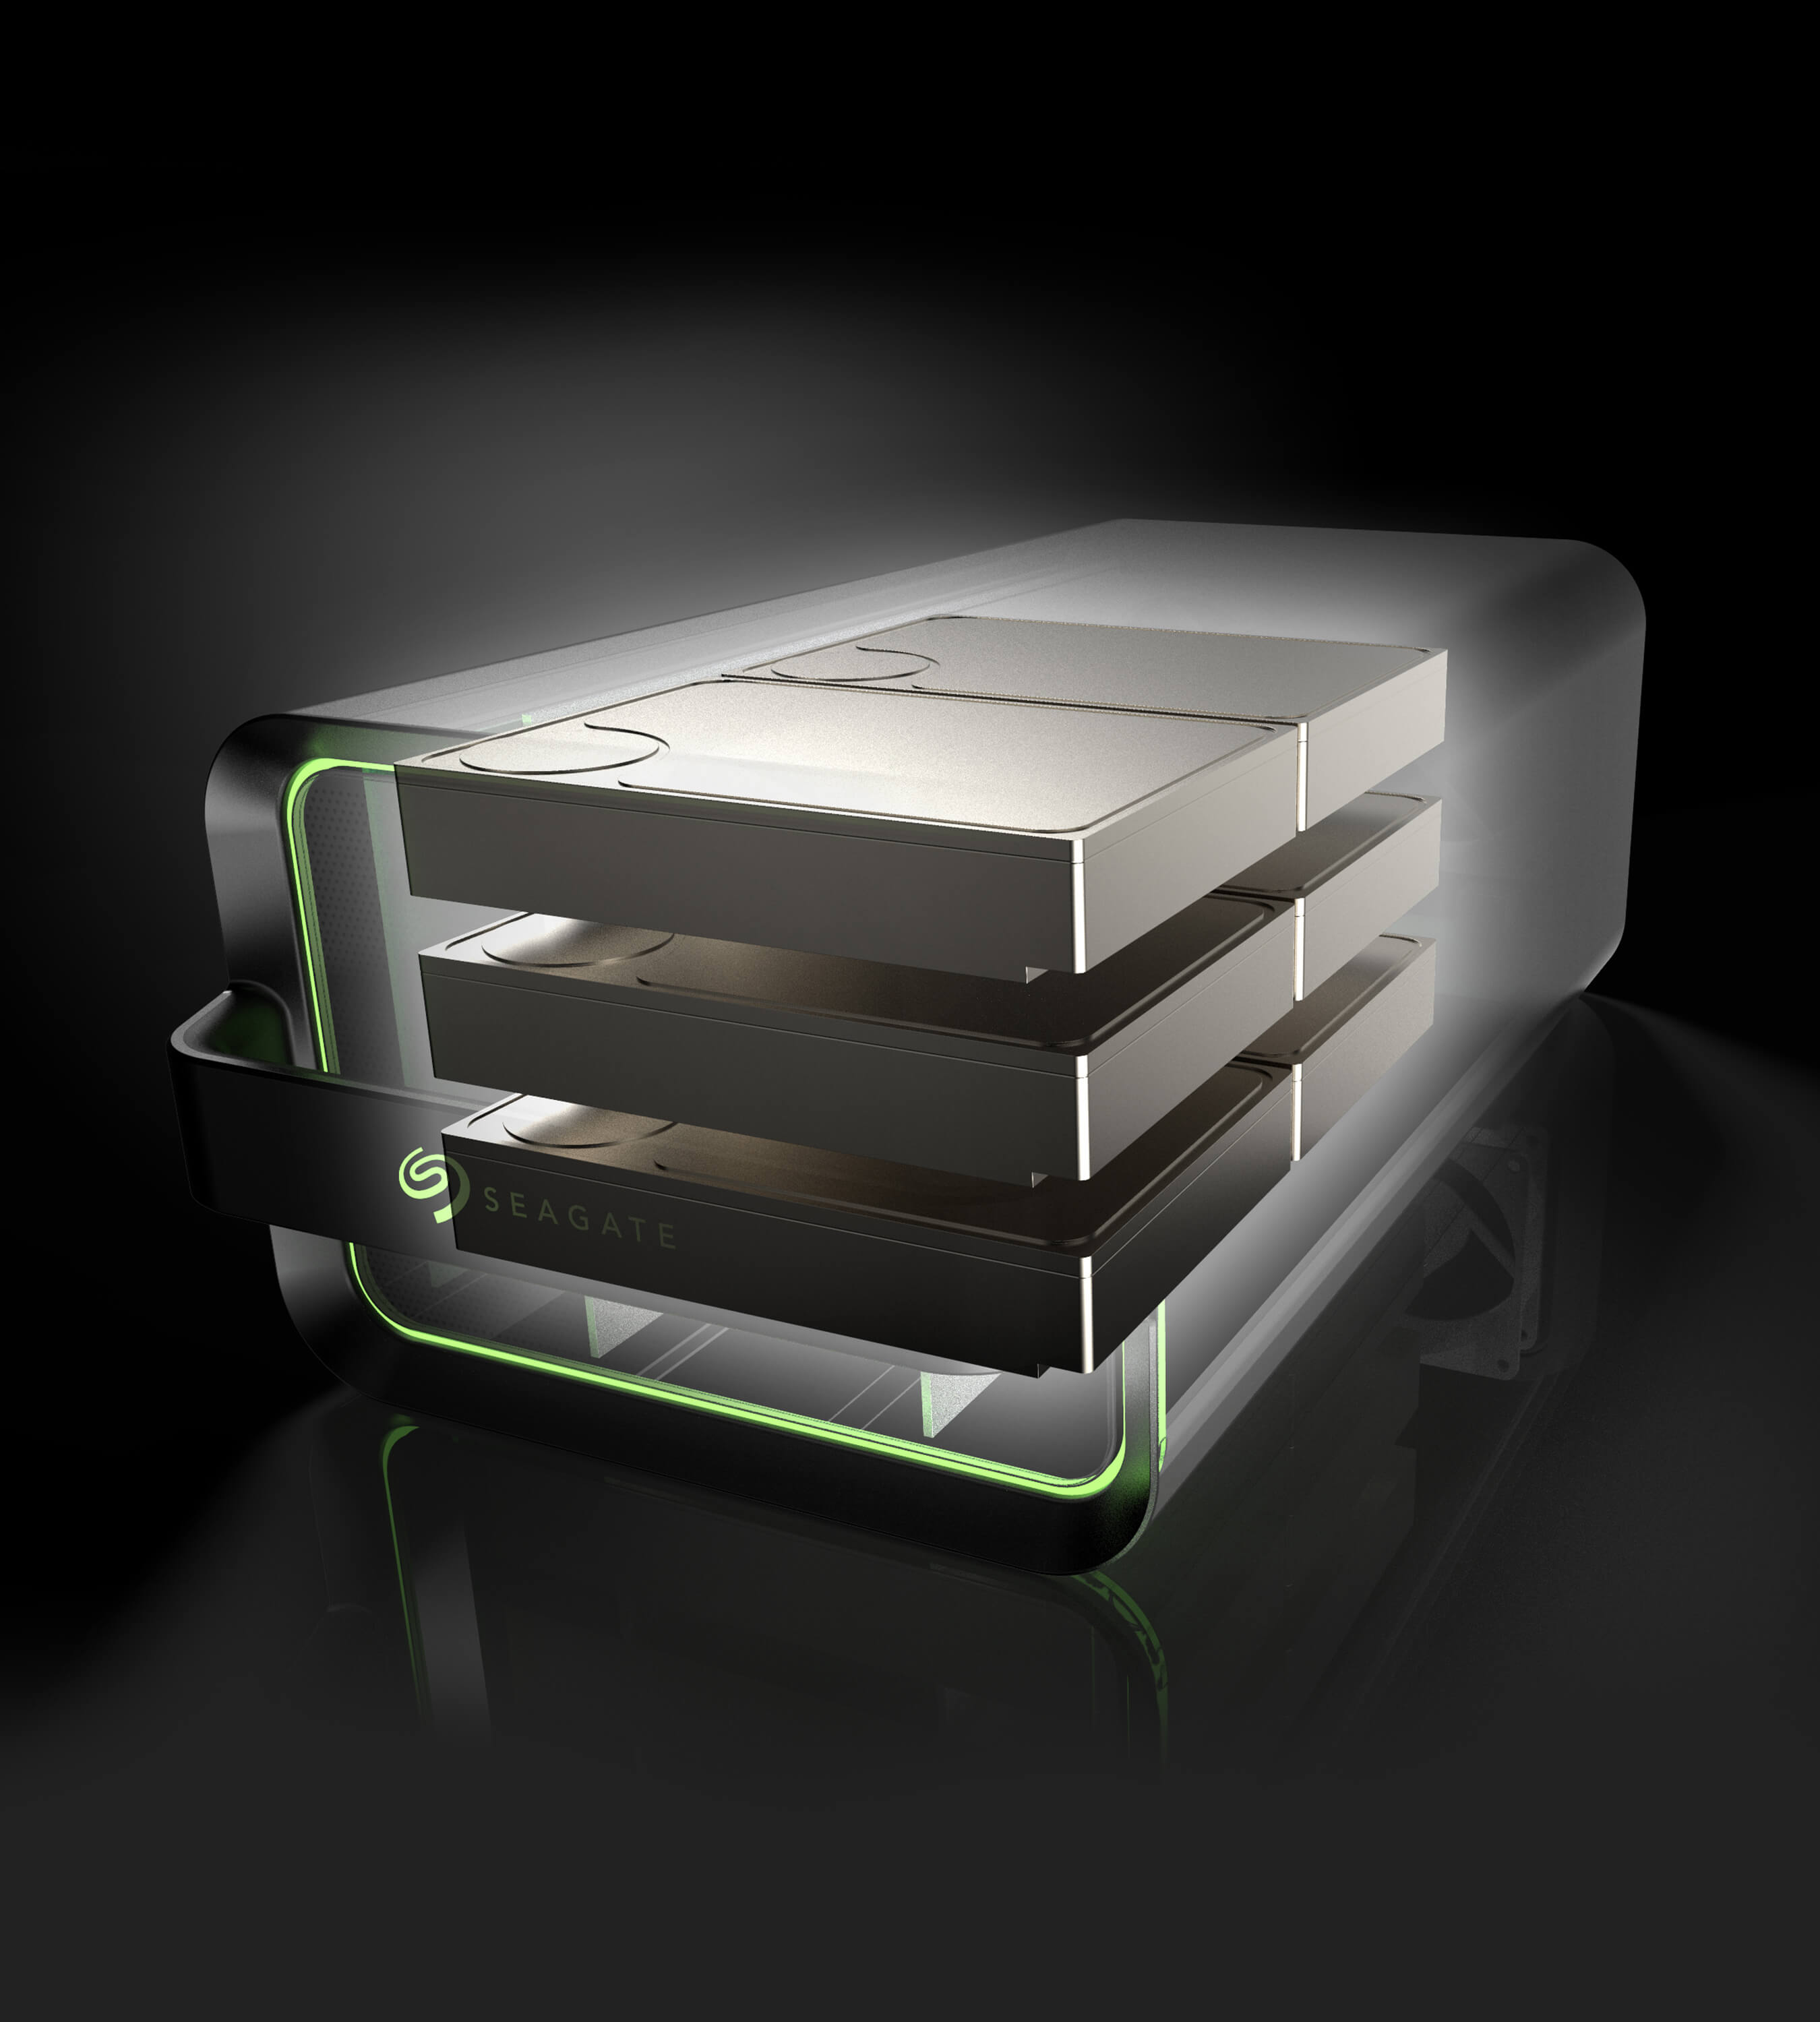 3D CAD Render by Sprout Studios of Seagate Lyve Mobile Products